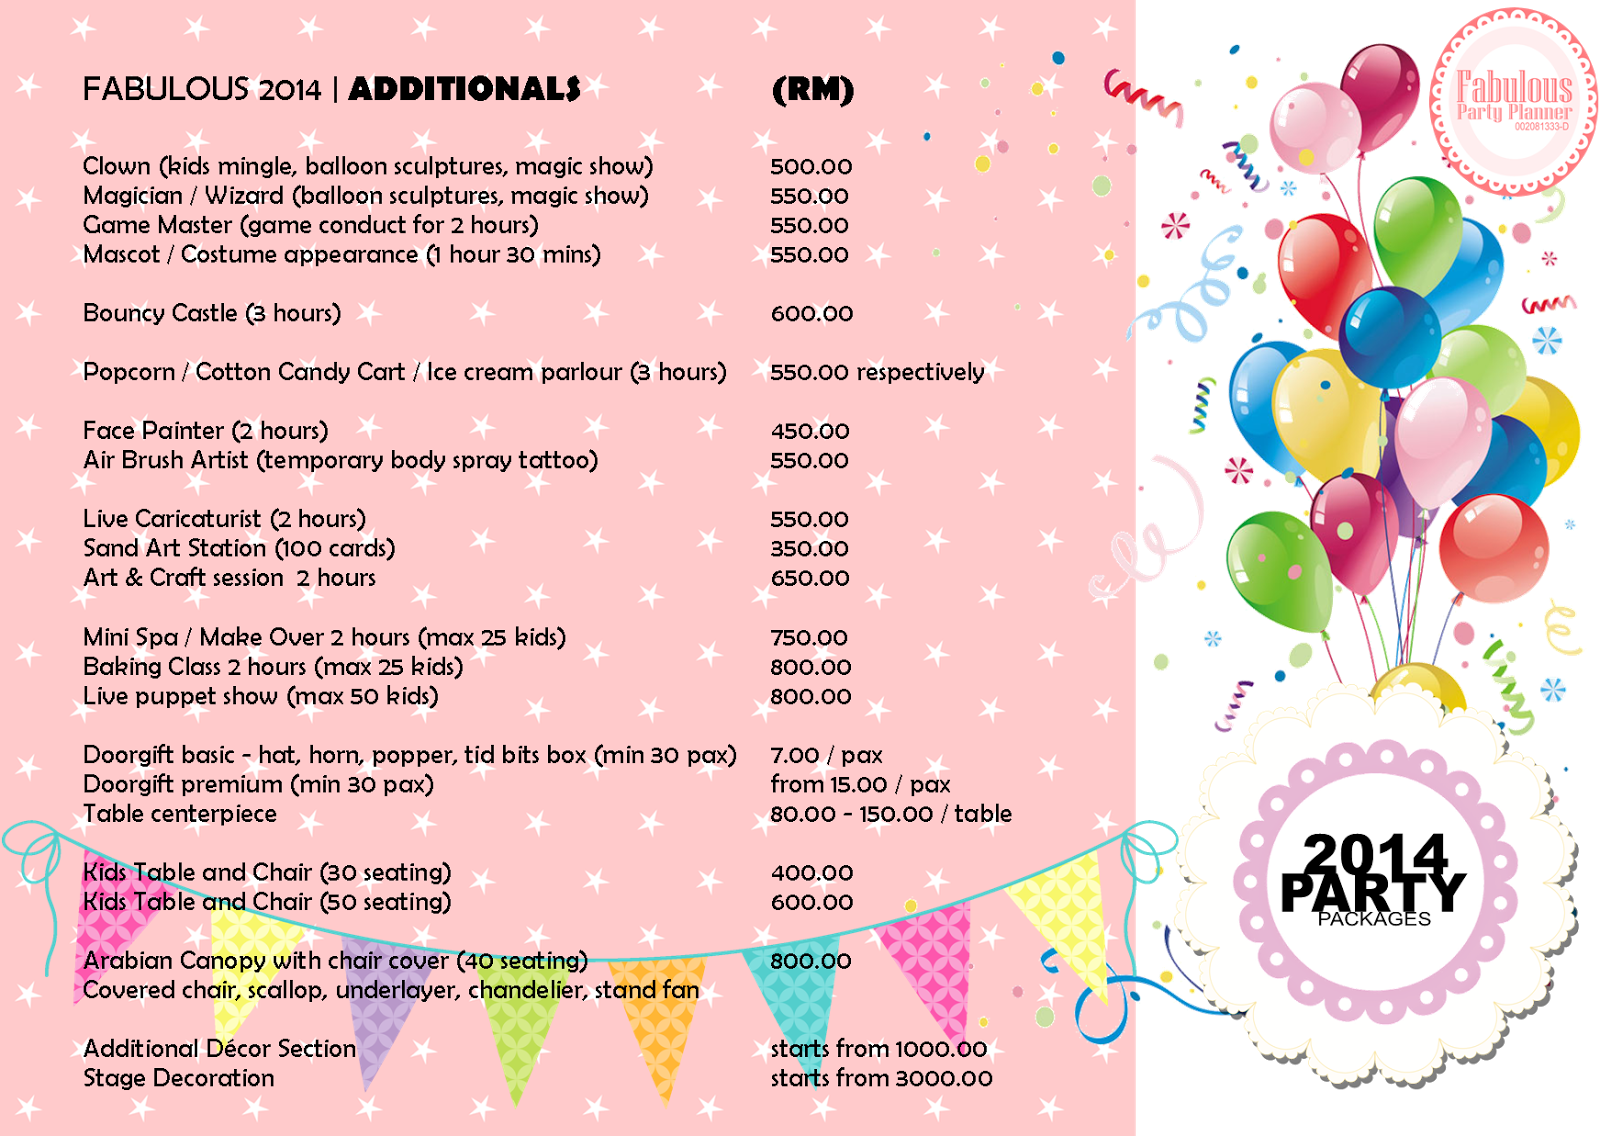 Wedding Event Planning Packages: Event Planner Manager Dinner Family Day Management Kids